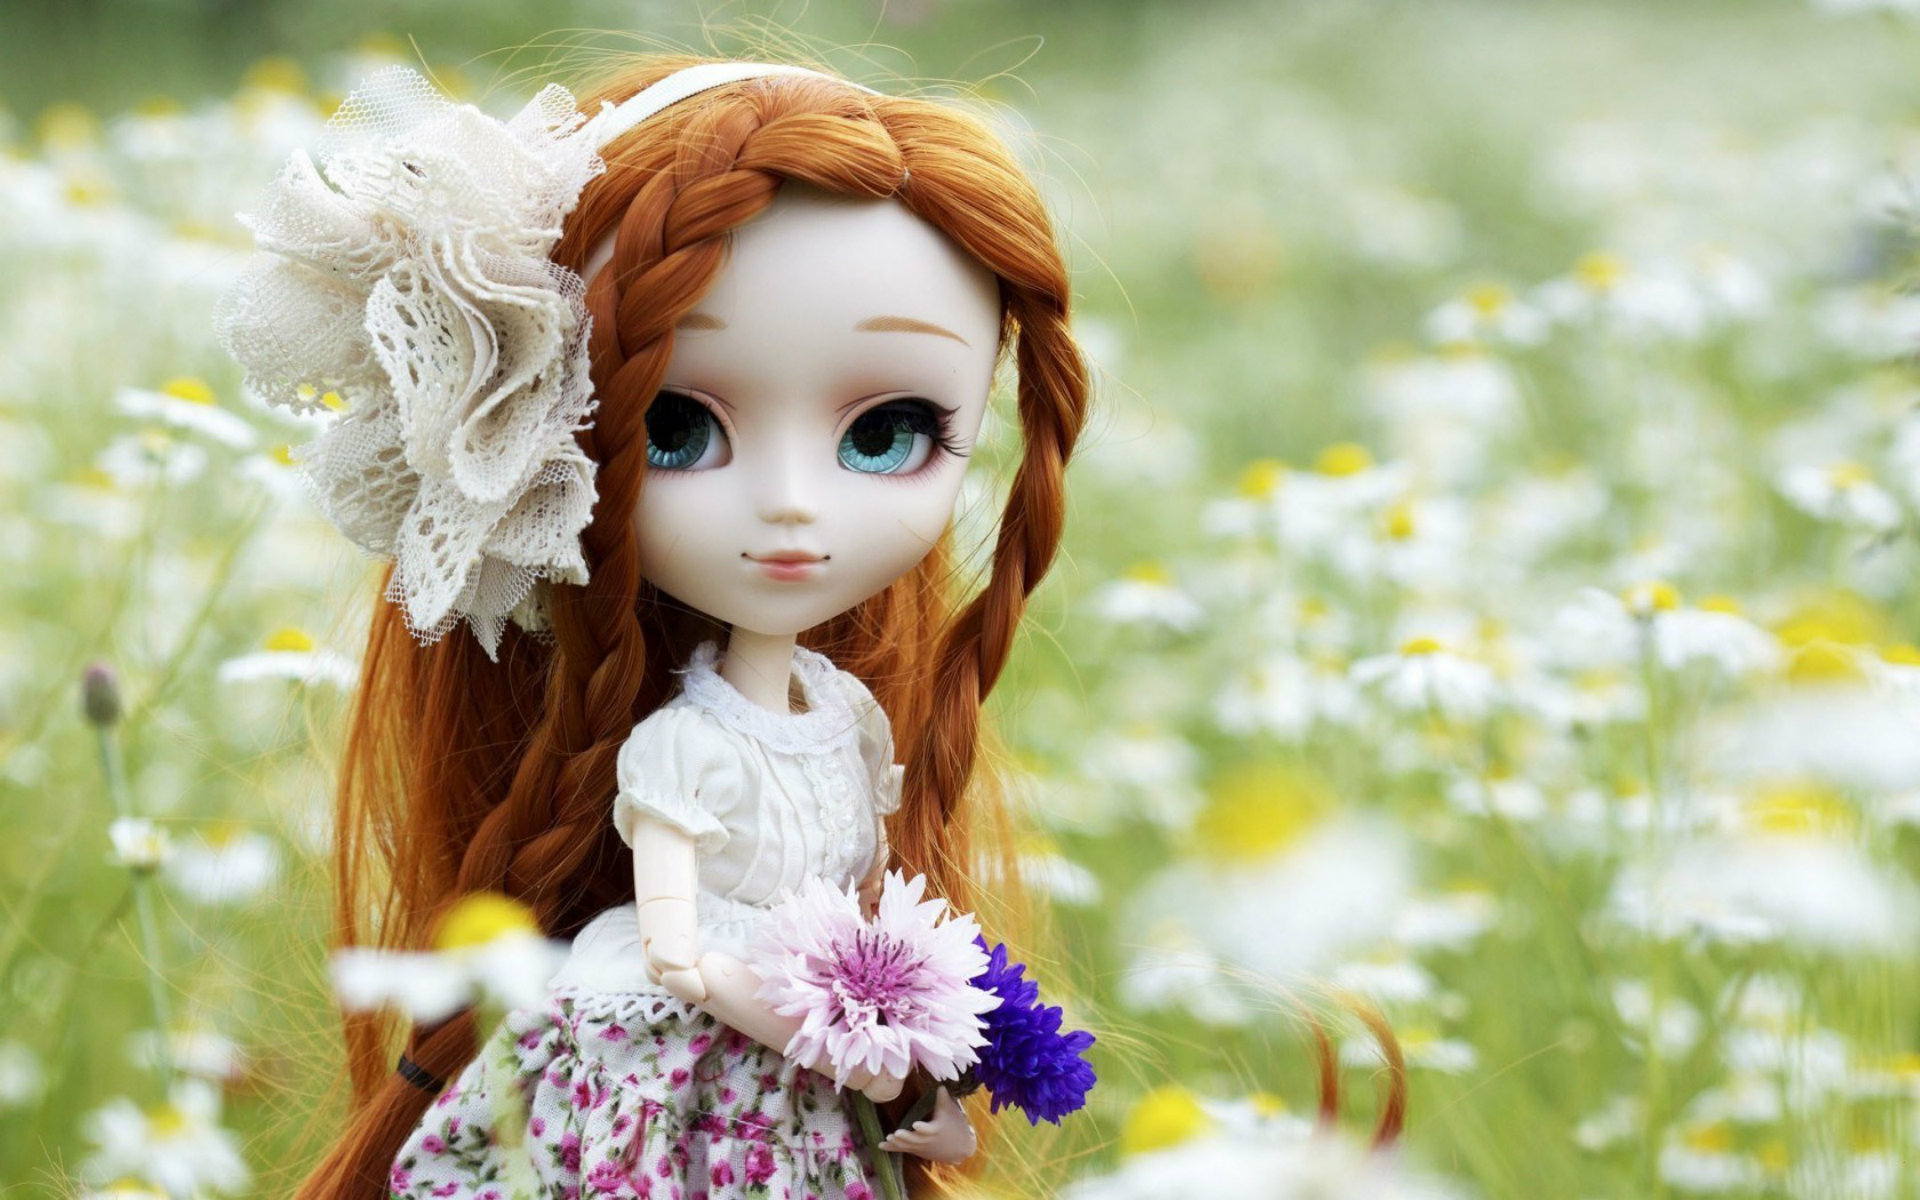 Cute Barbie Doll DP For Girls 1920x1200